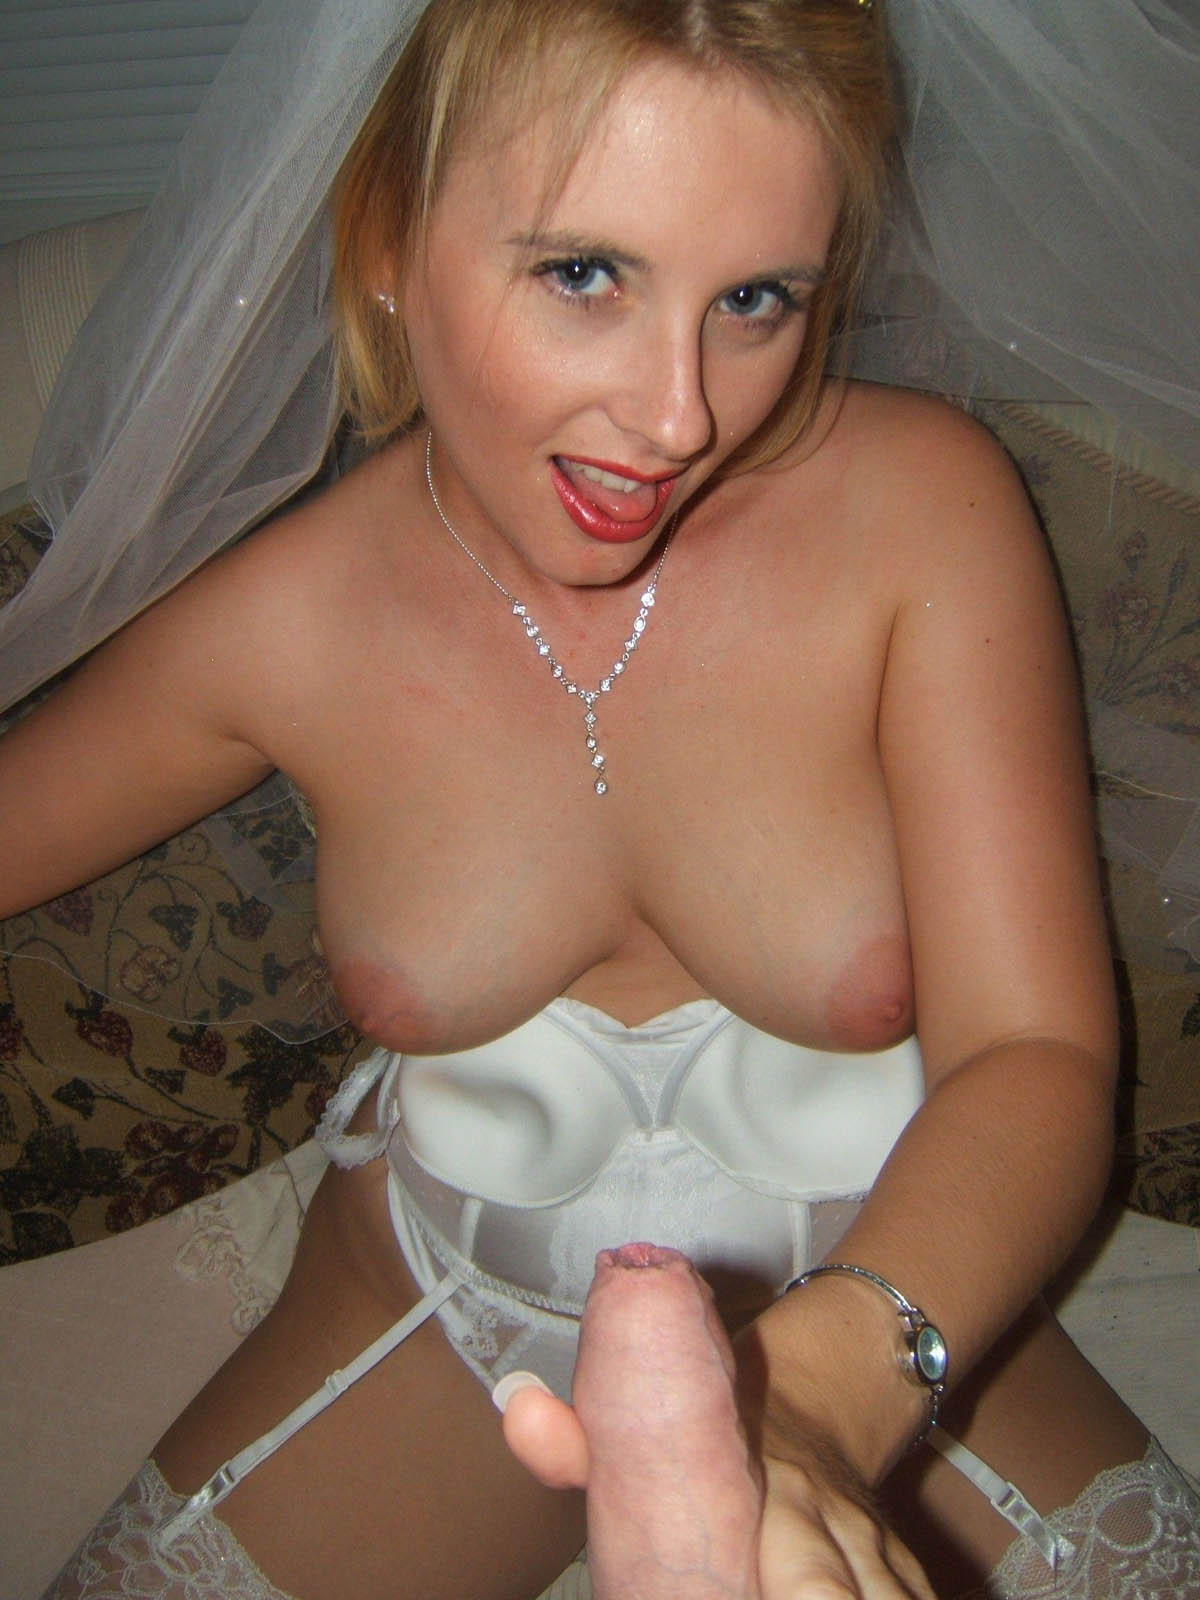 Bra bride sluts remarkable, this